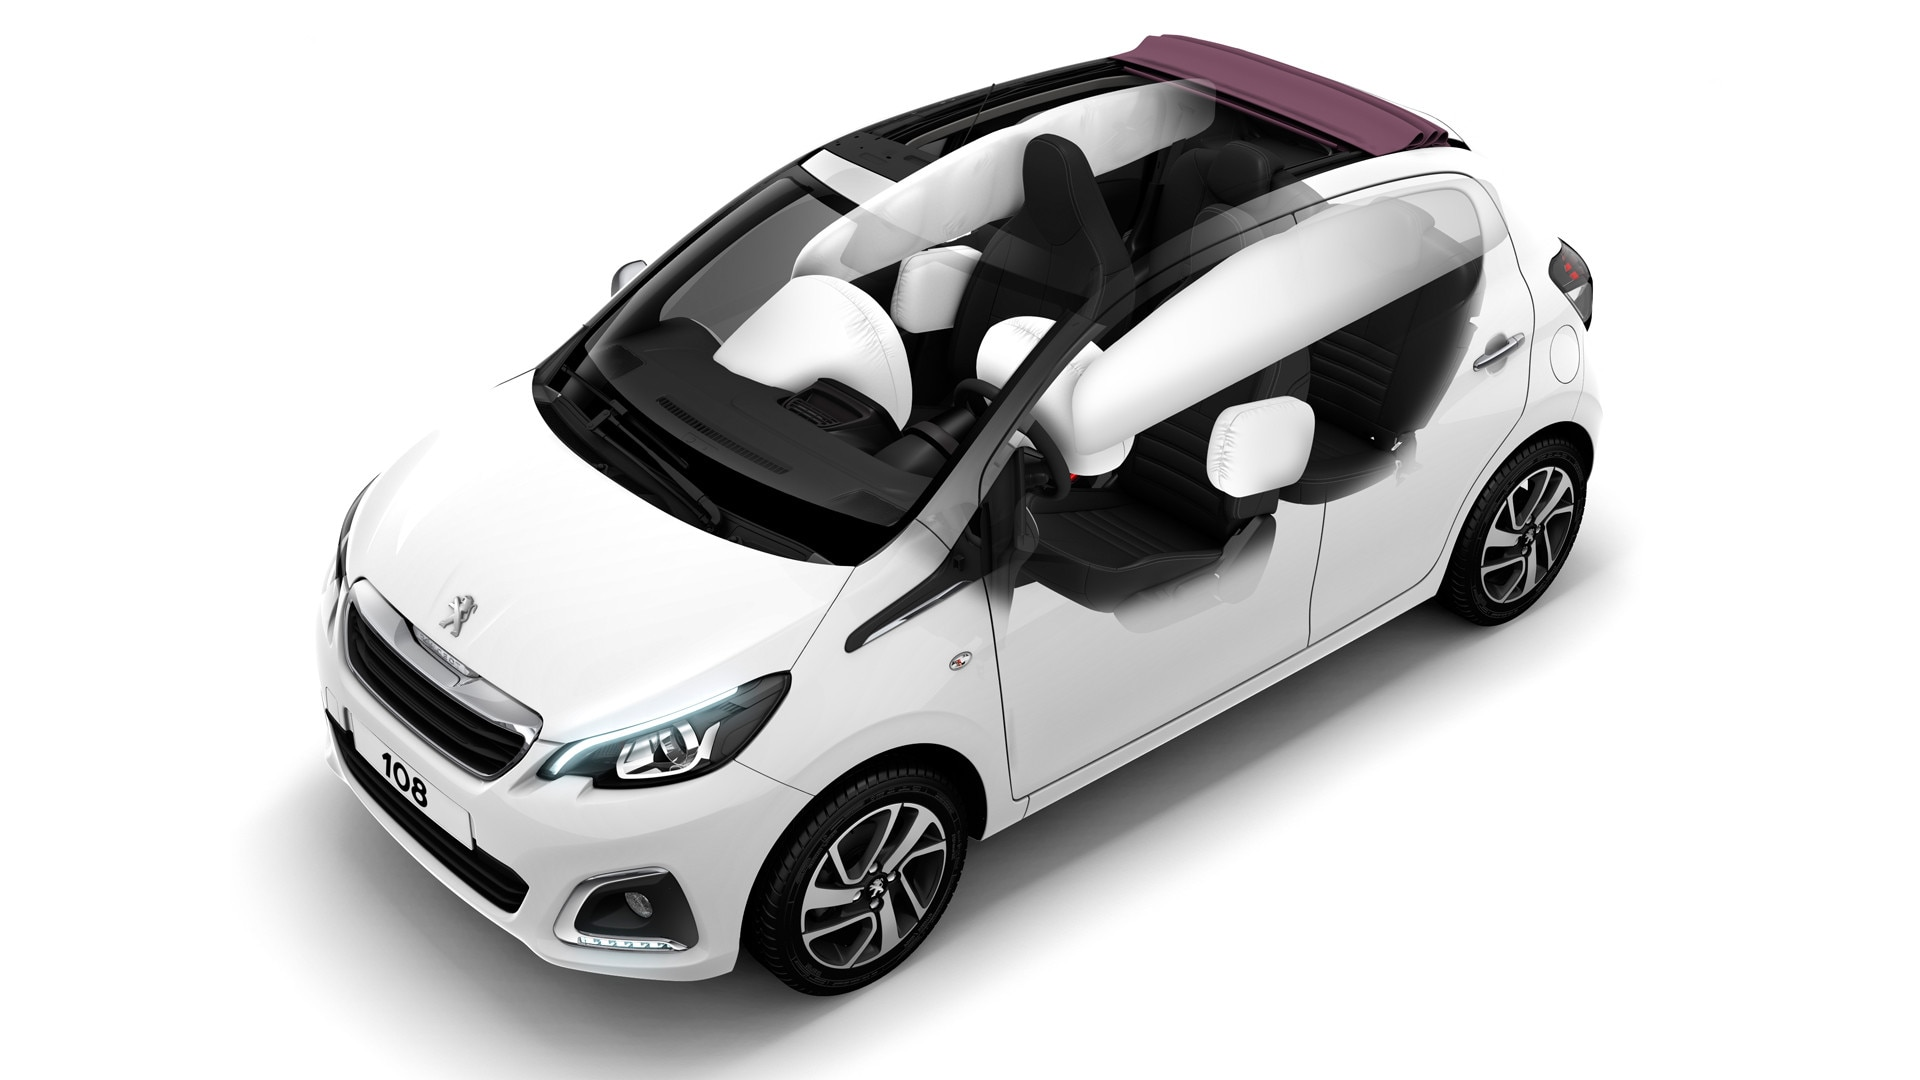 peugeot 108 5 portes photos et vid os de la voiture citadine peugeot. Black Bedroom Furniture Sets. Home Design Ideas